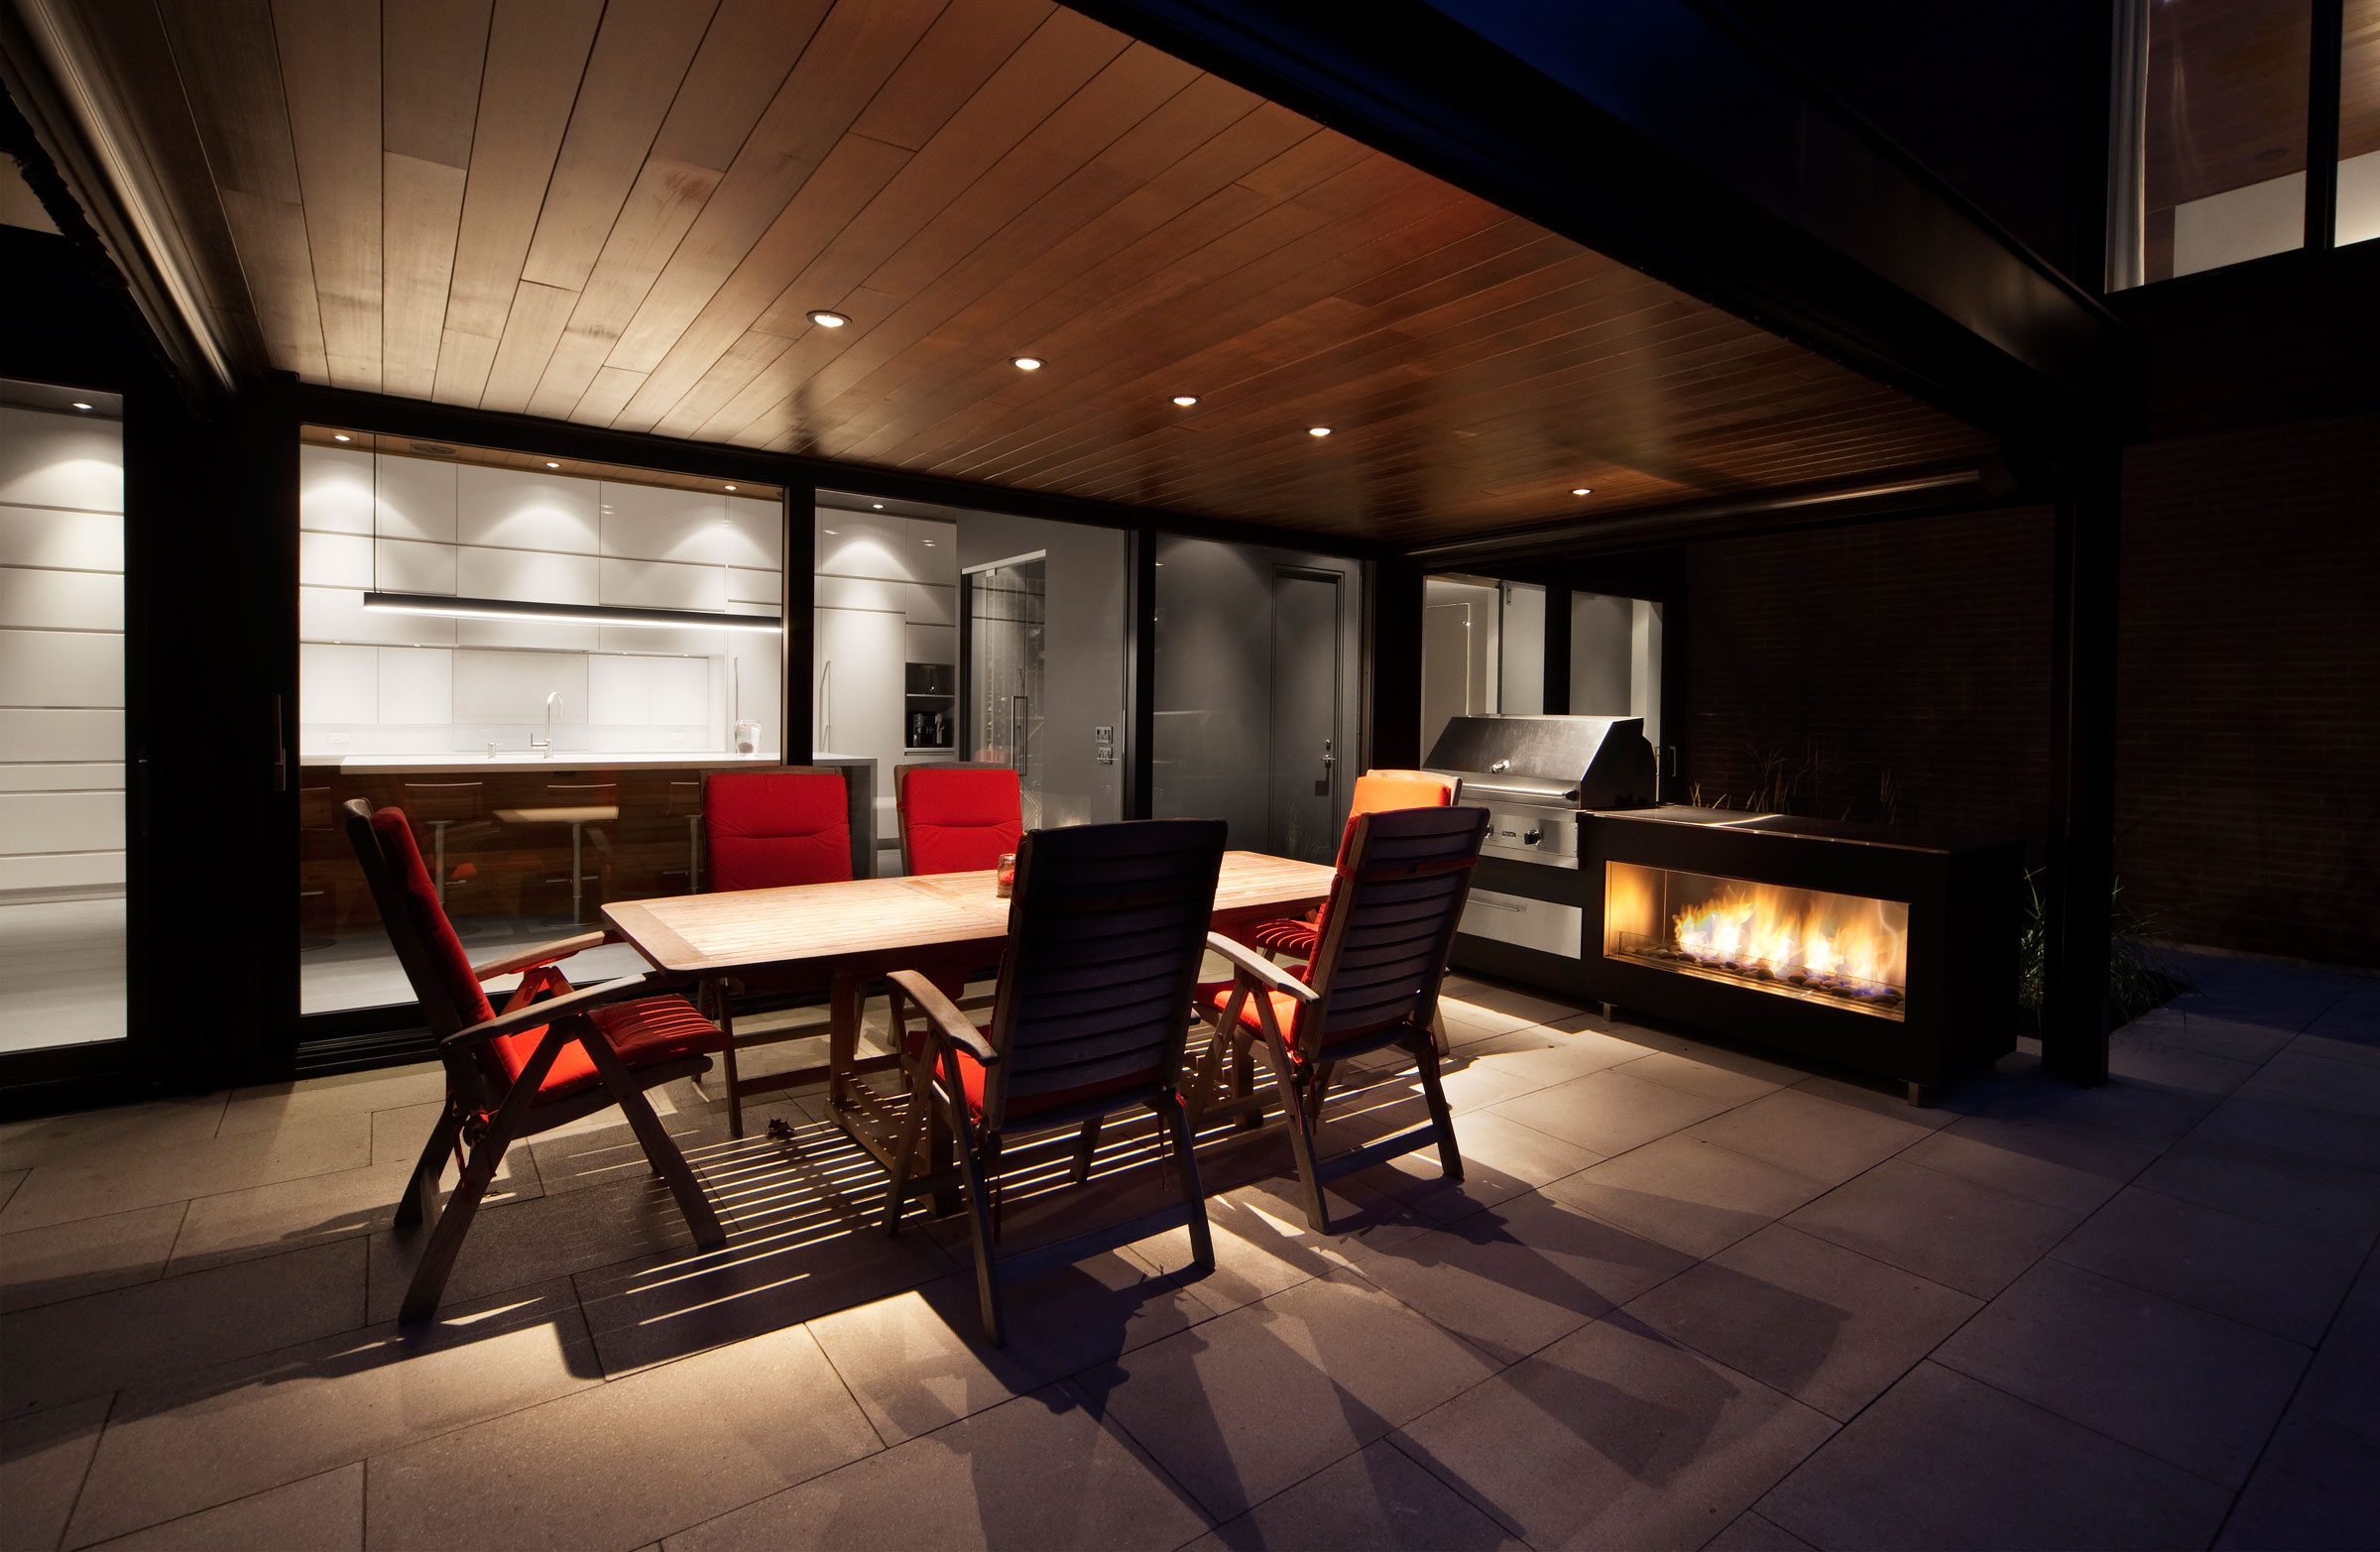 Intimate and Discreet Veranda House Located in a Forest Development designed by Blouin Tardif Architecture-Environnement-09